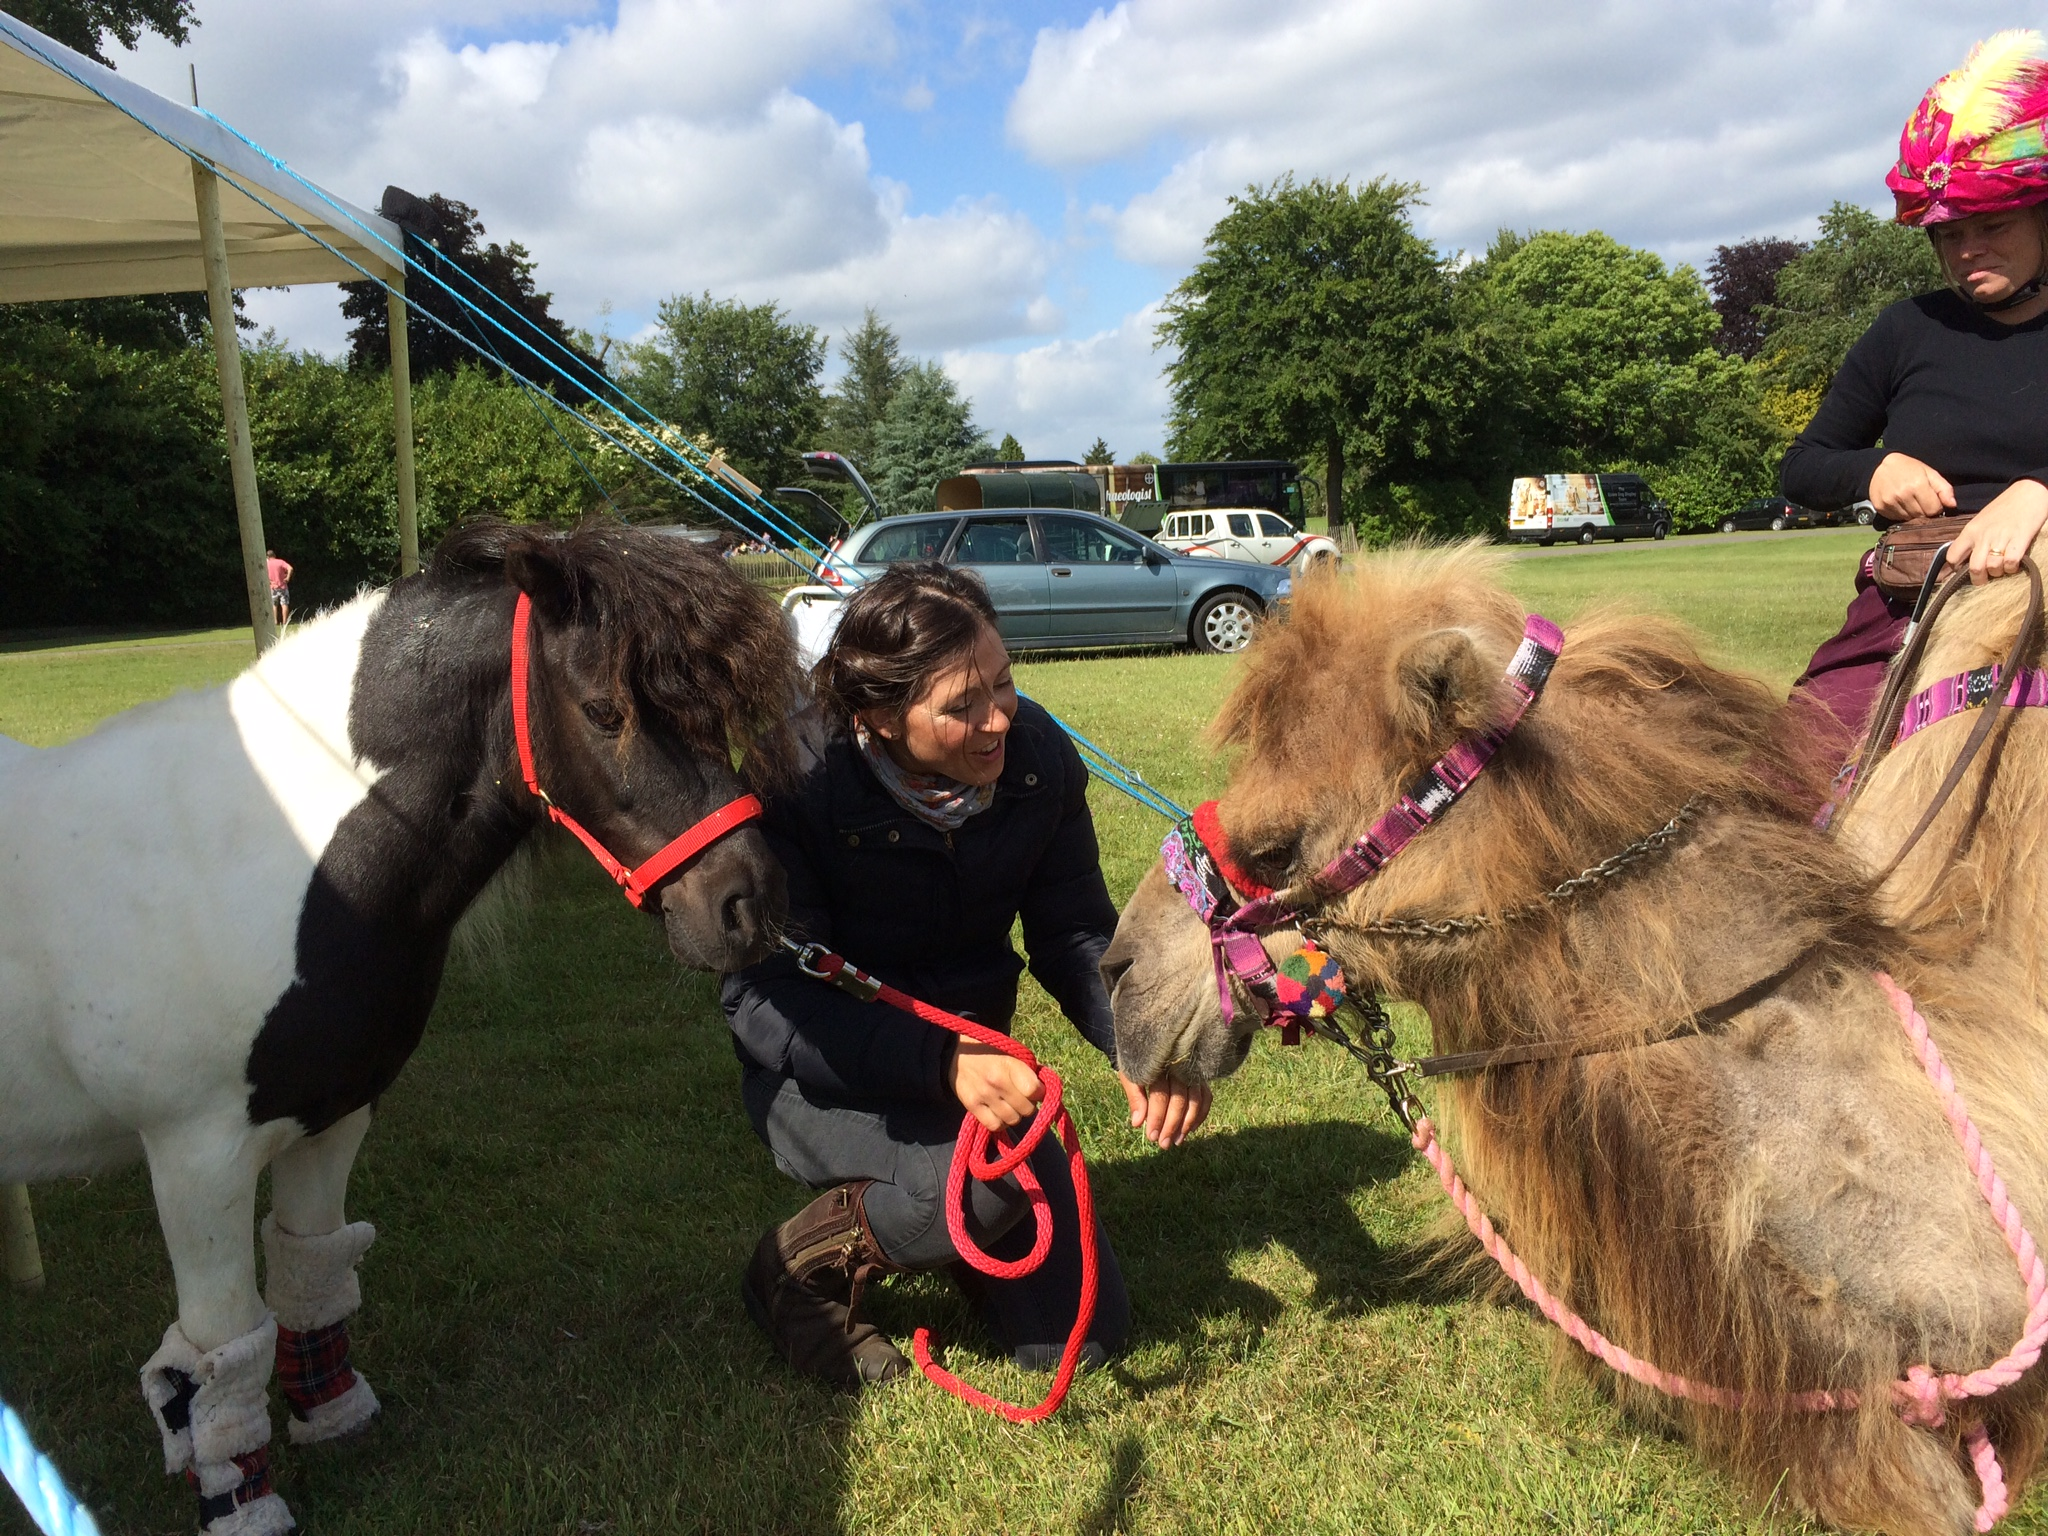 Billy and Timojen the Bactrian Camel